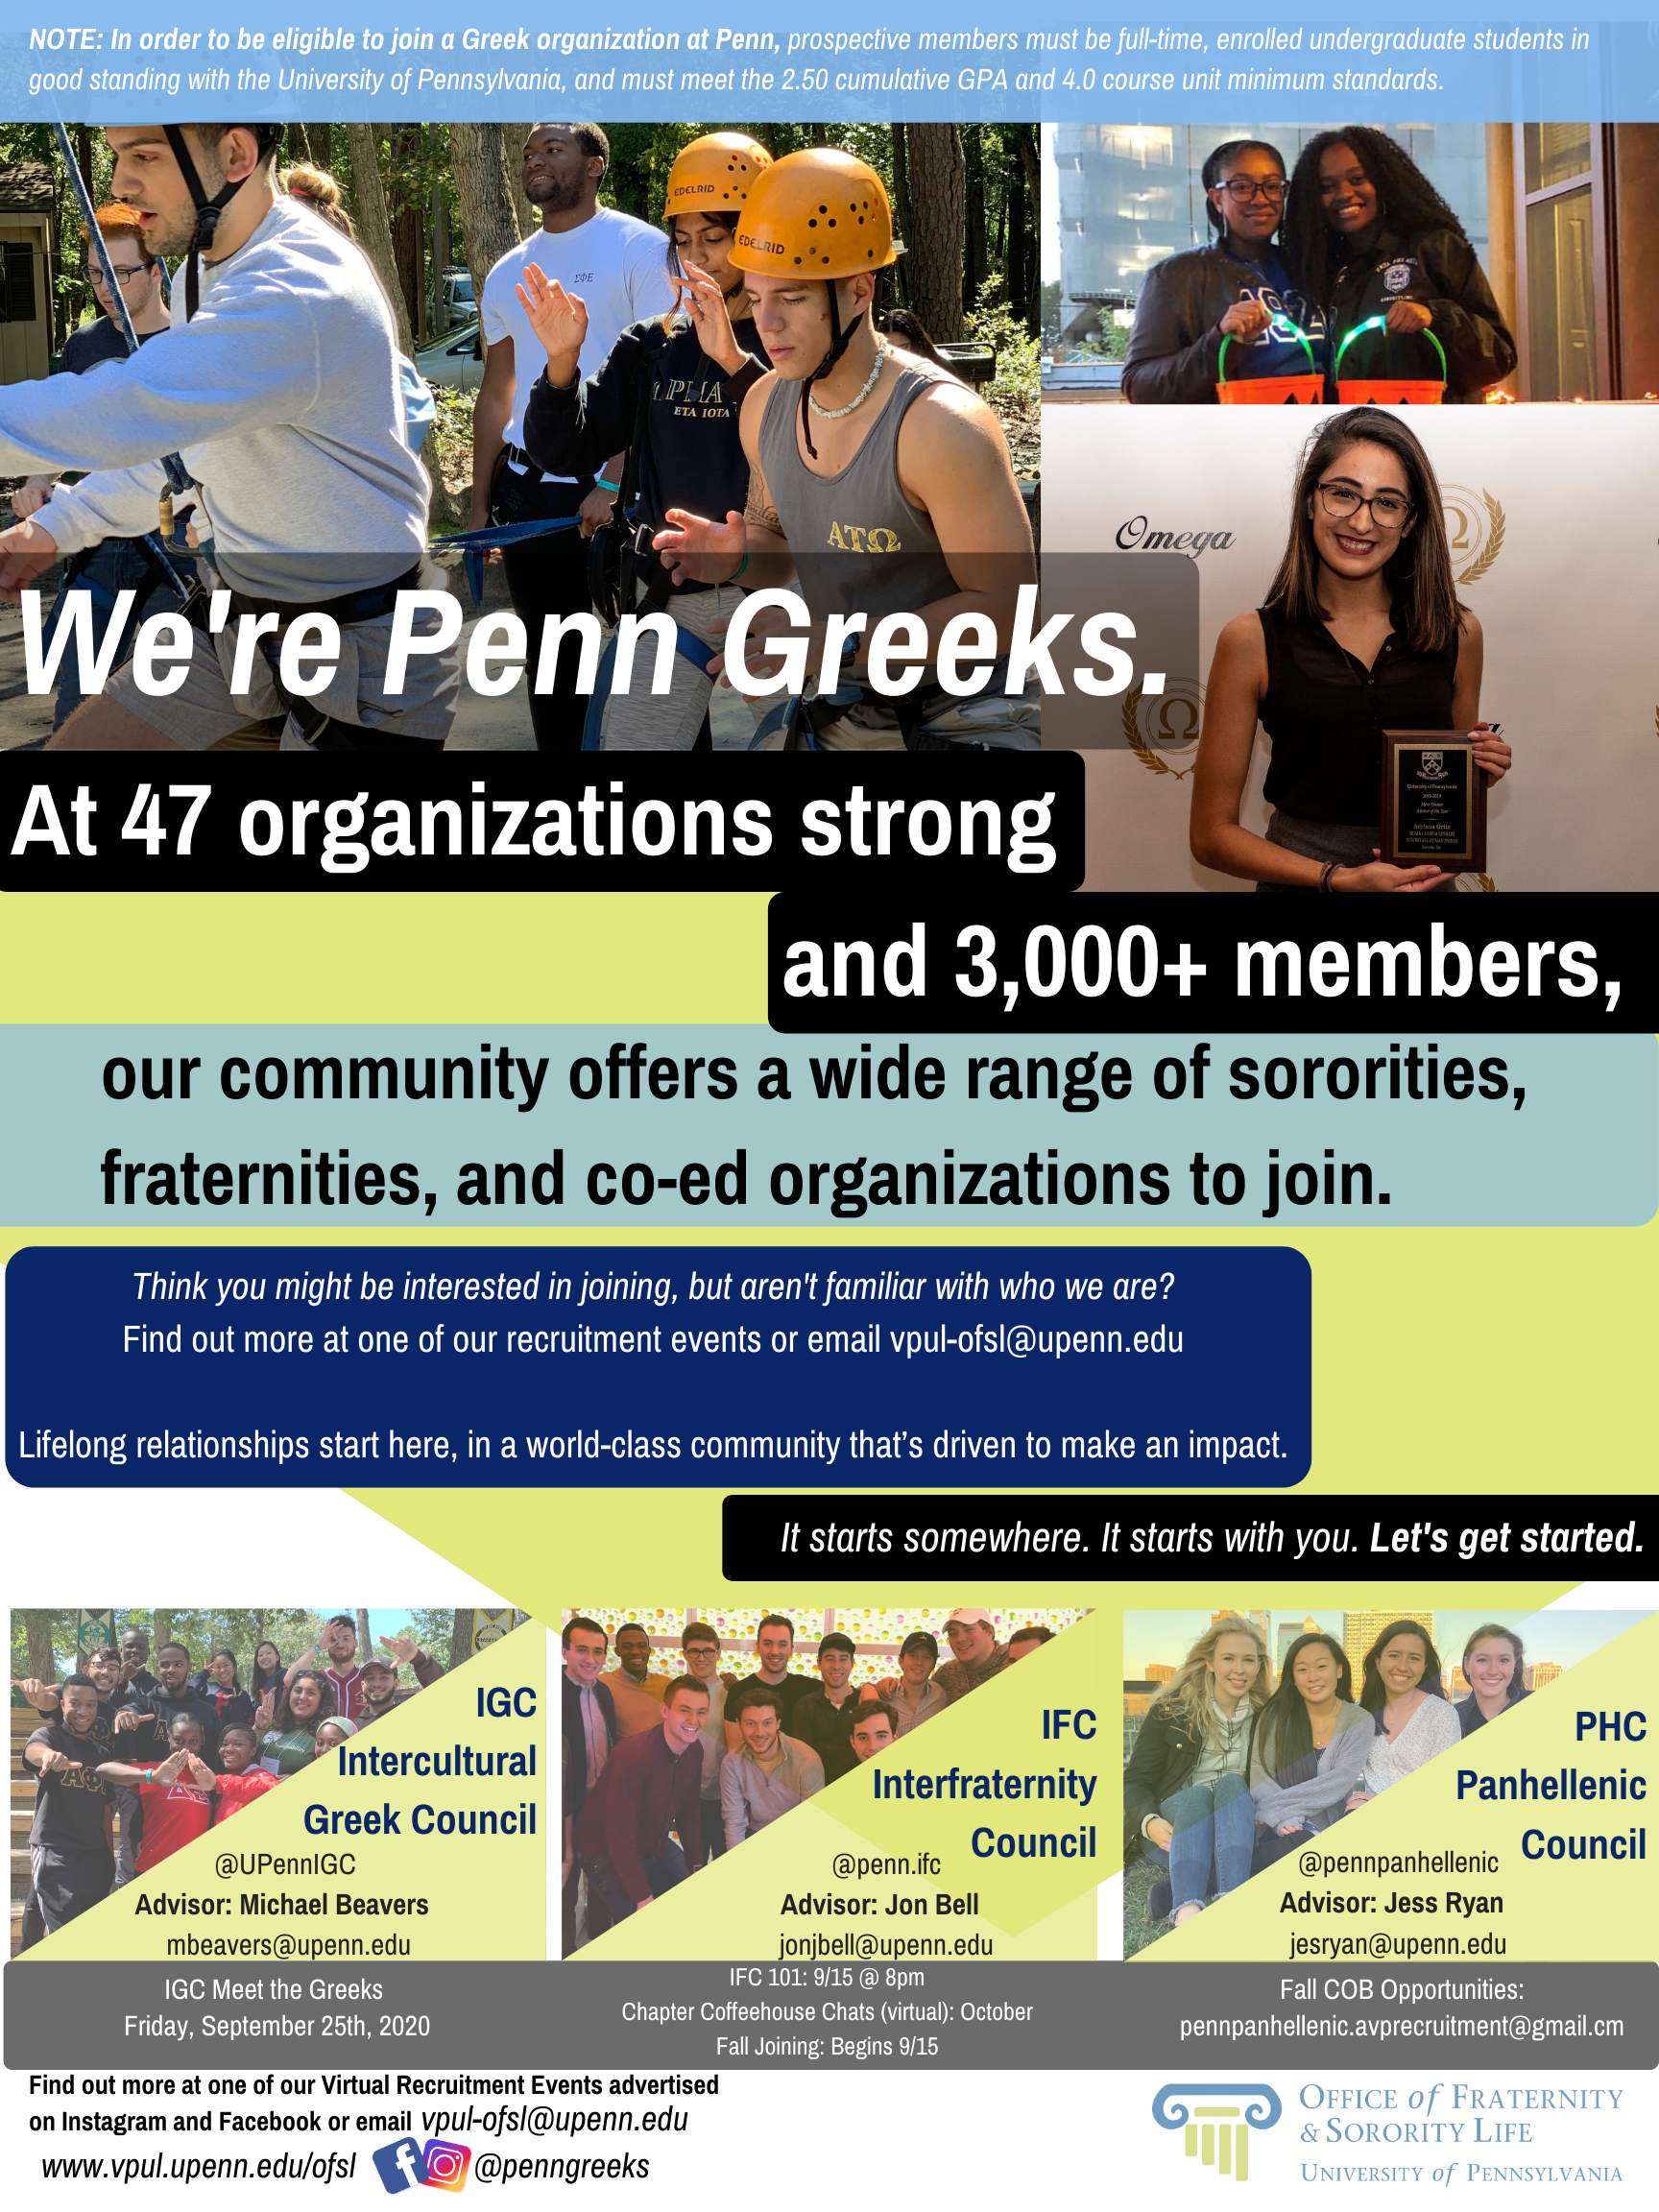 We're Penn Greeks. Information graphic containing the content located on this page.